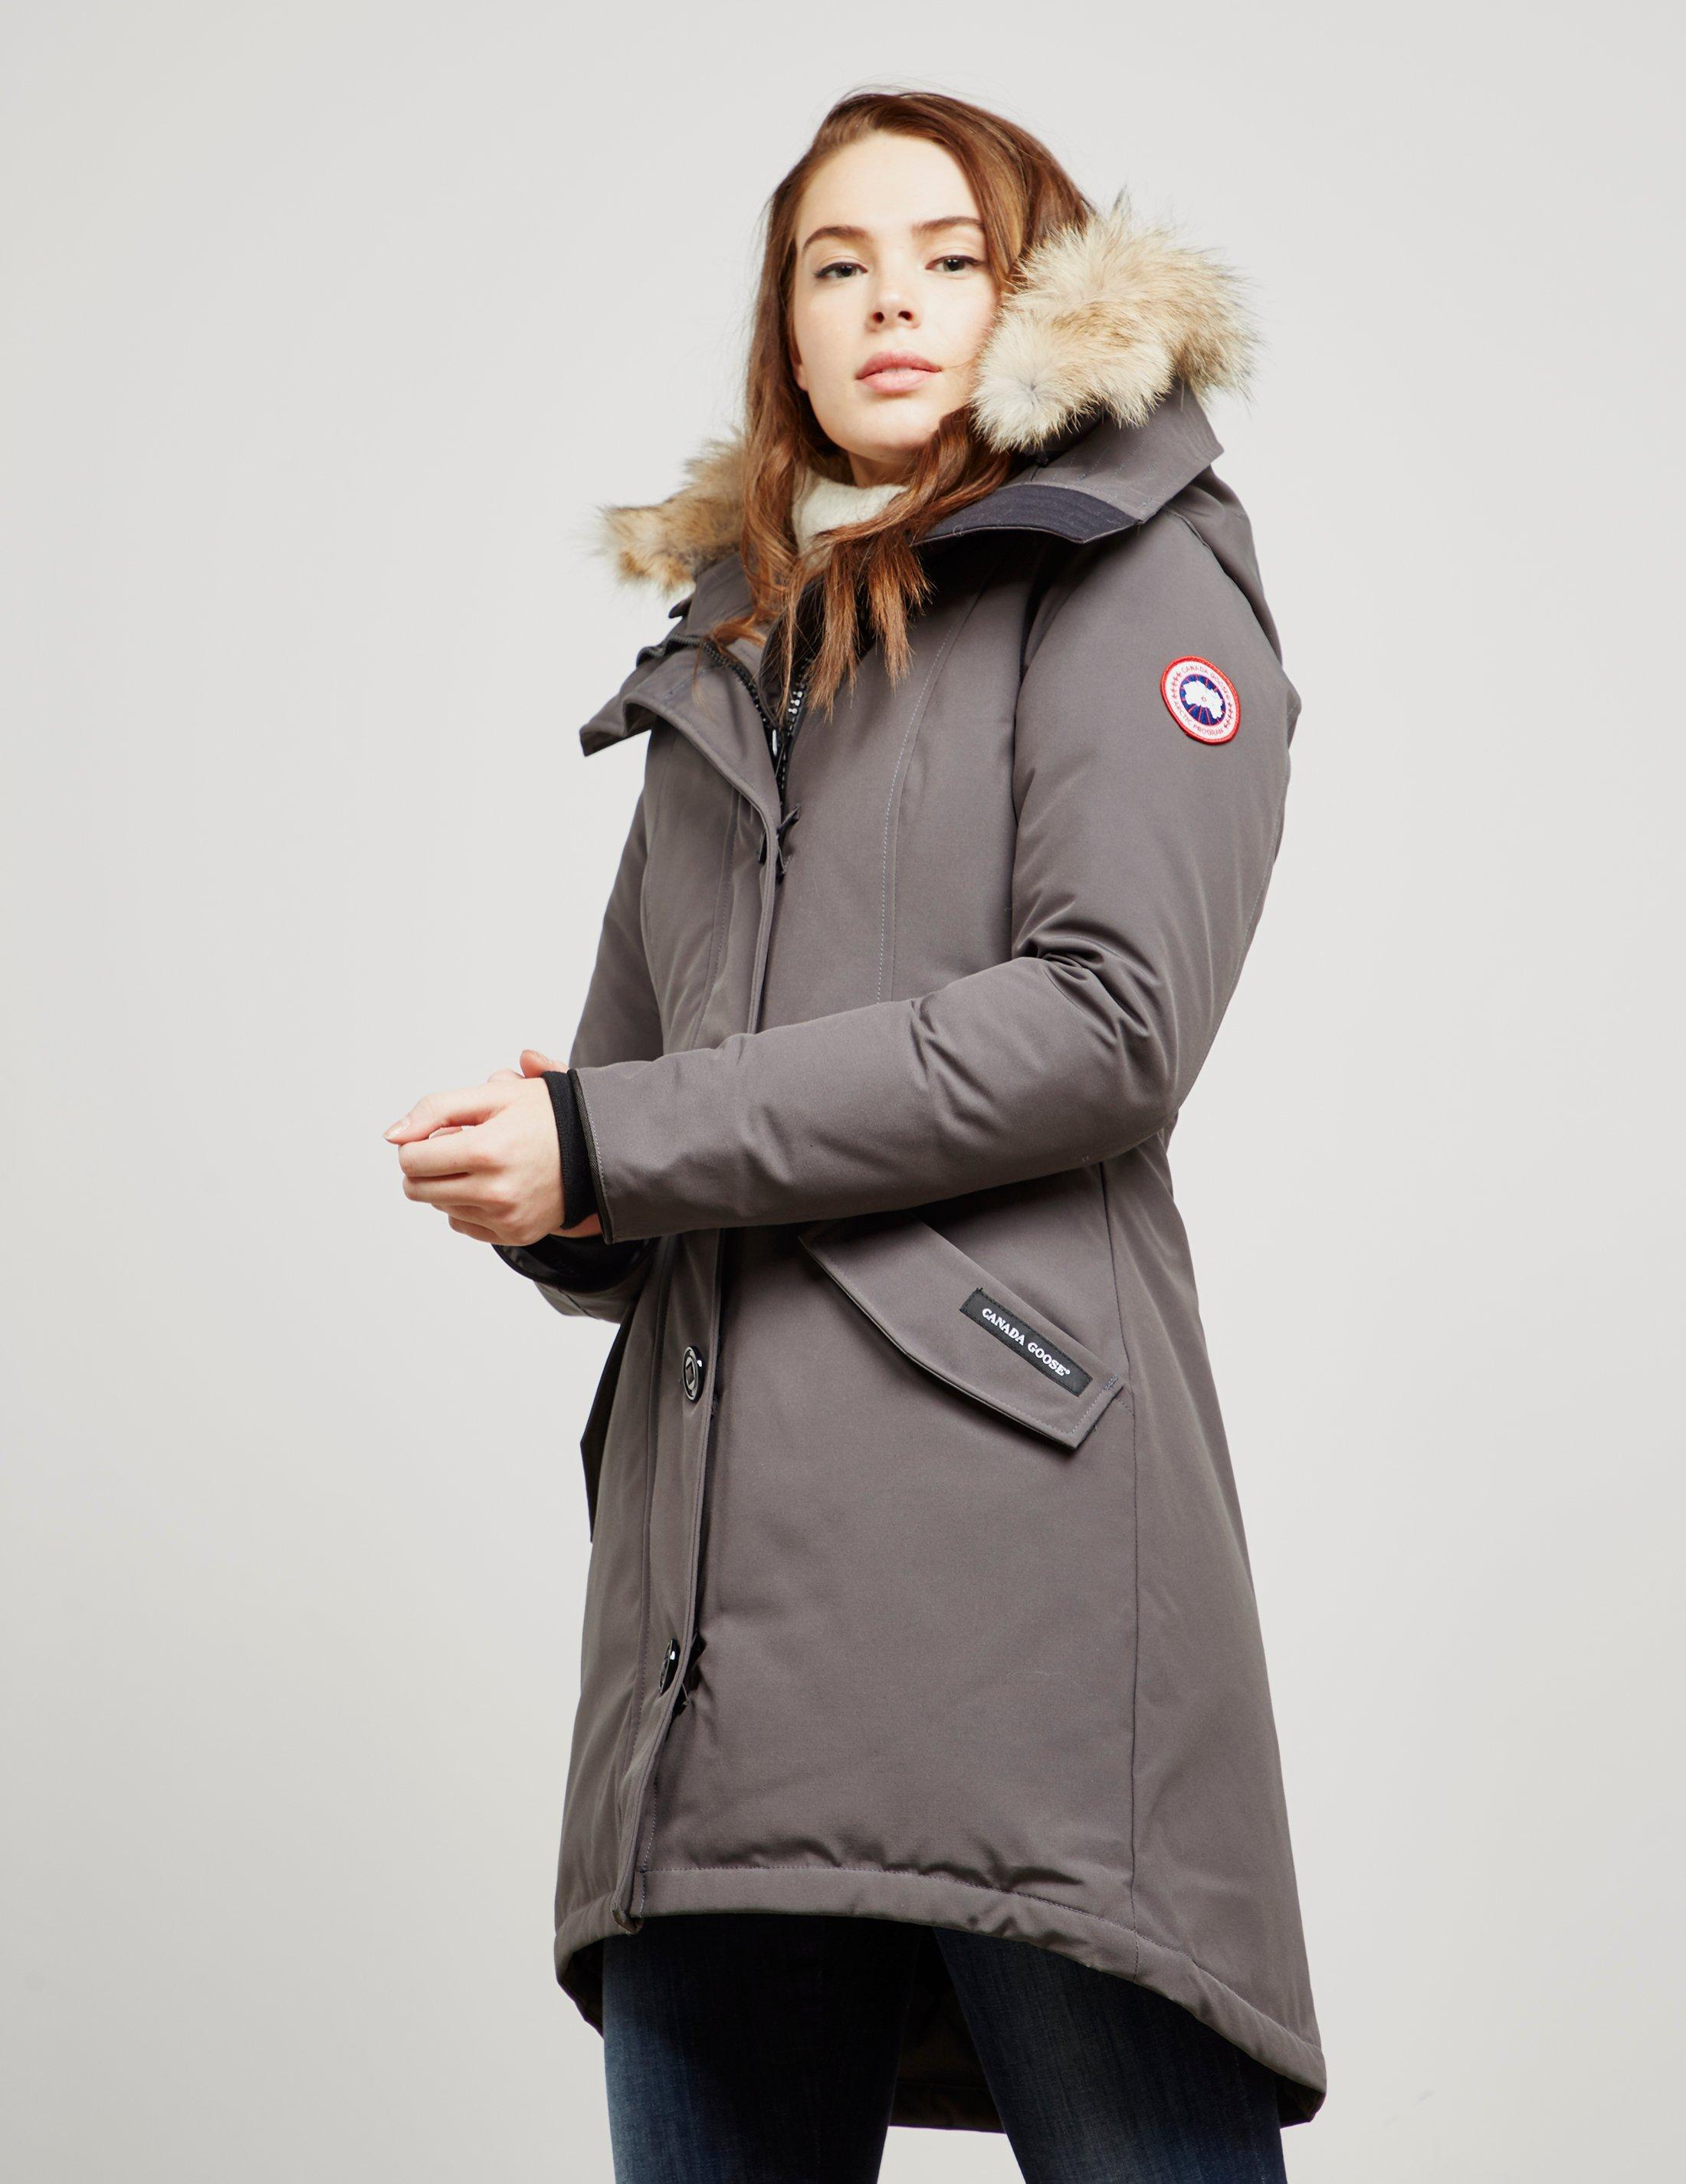 db48f1a2de71 closeout lyst canada goose womens rossclair padded parka jacket gre 84a41  c6c6c